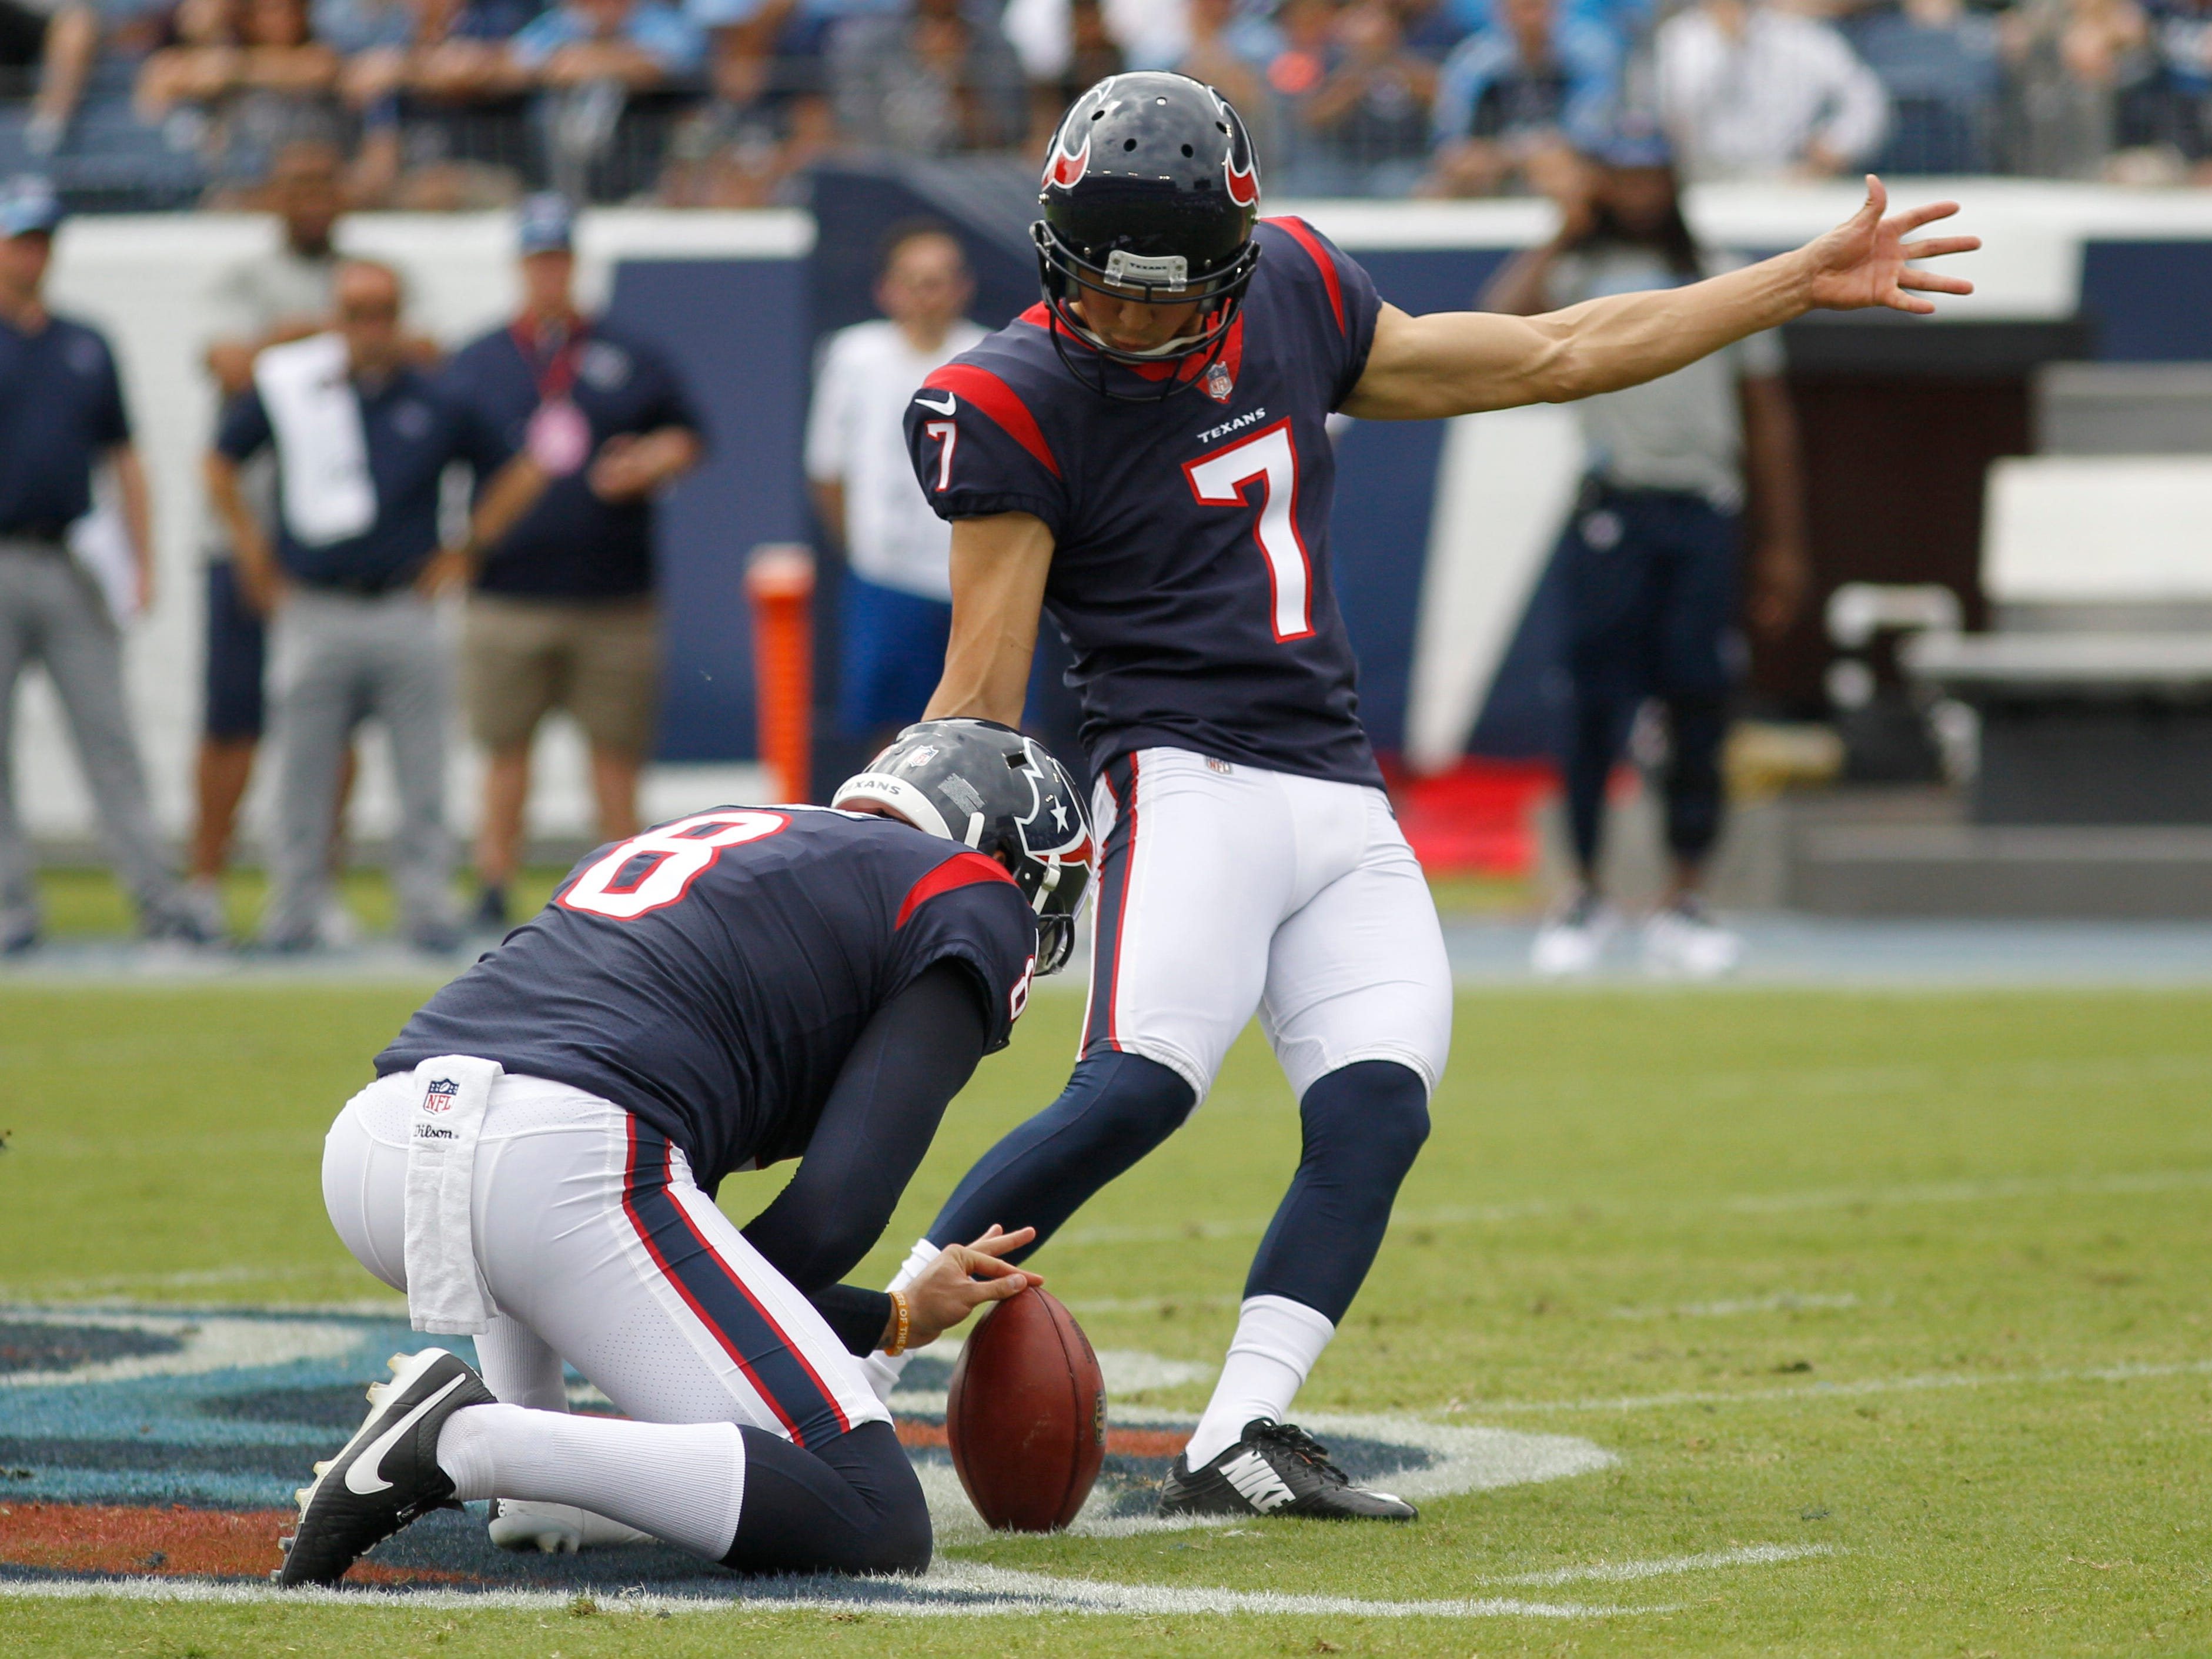 Texans place kicker Ka'imi Fairbairn (7) misses a field goal attempt in the first half at Nissan Stadium Sunday, Sept. 16, 2018, in Nashville, Tenn.